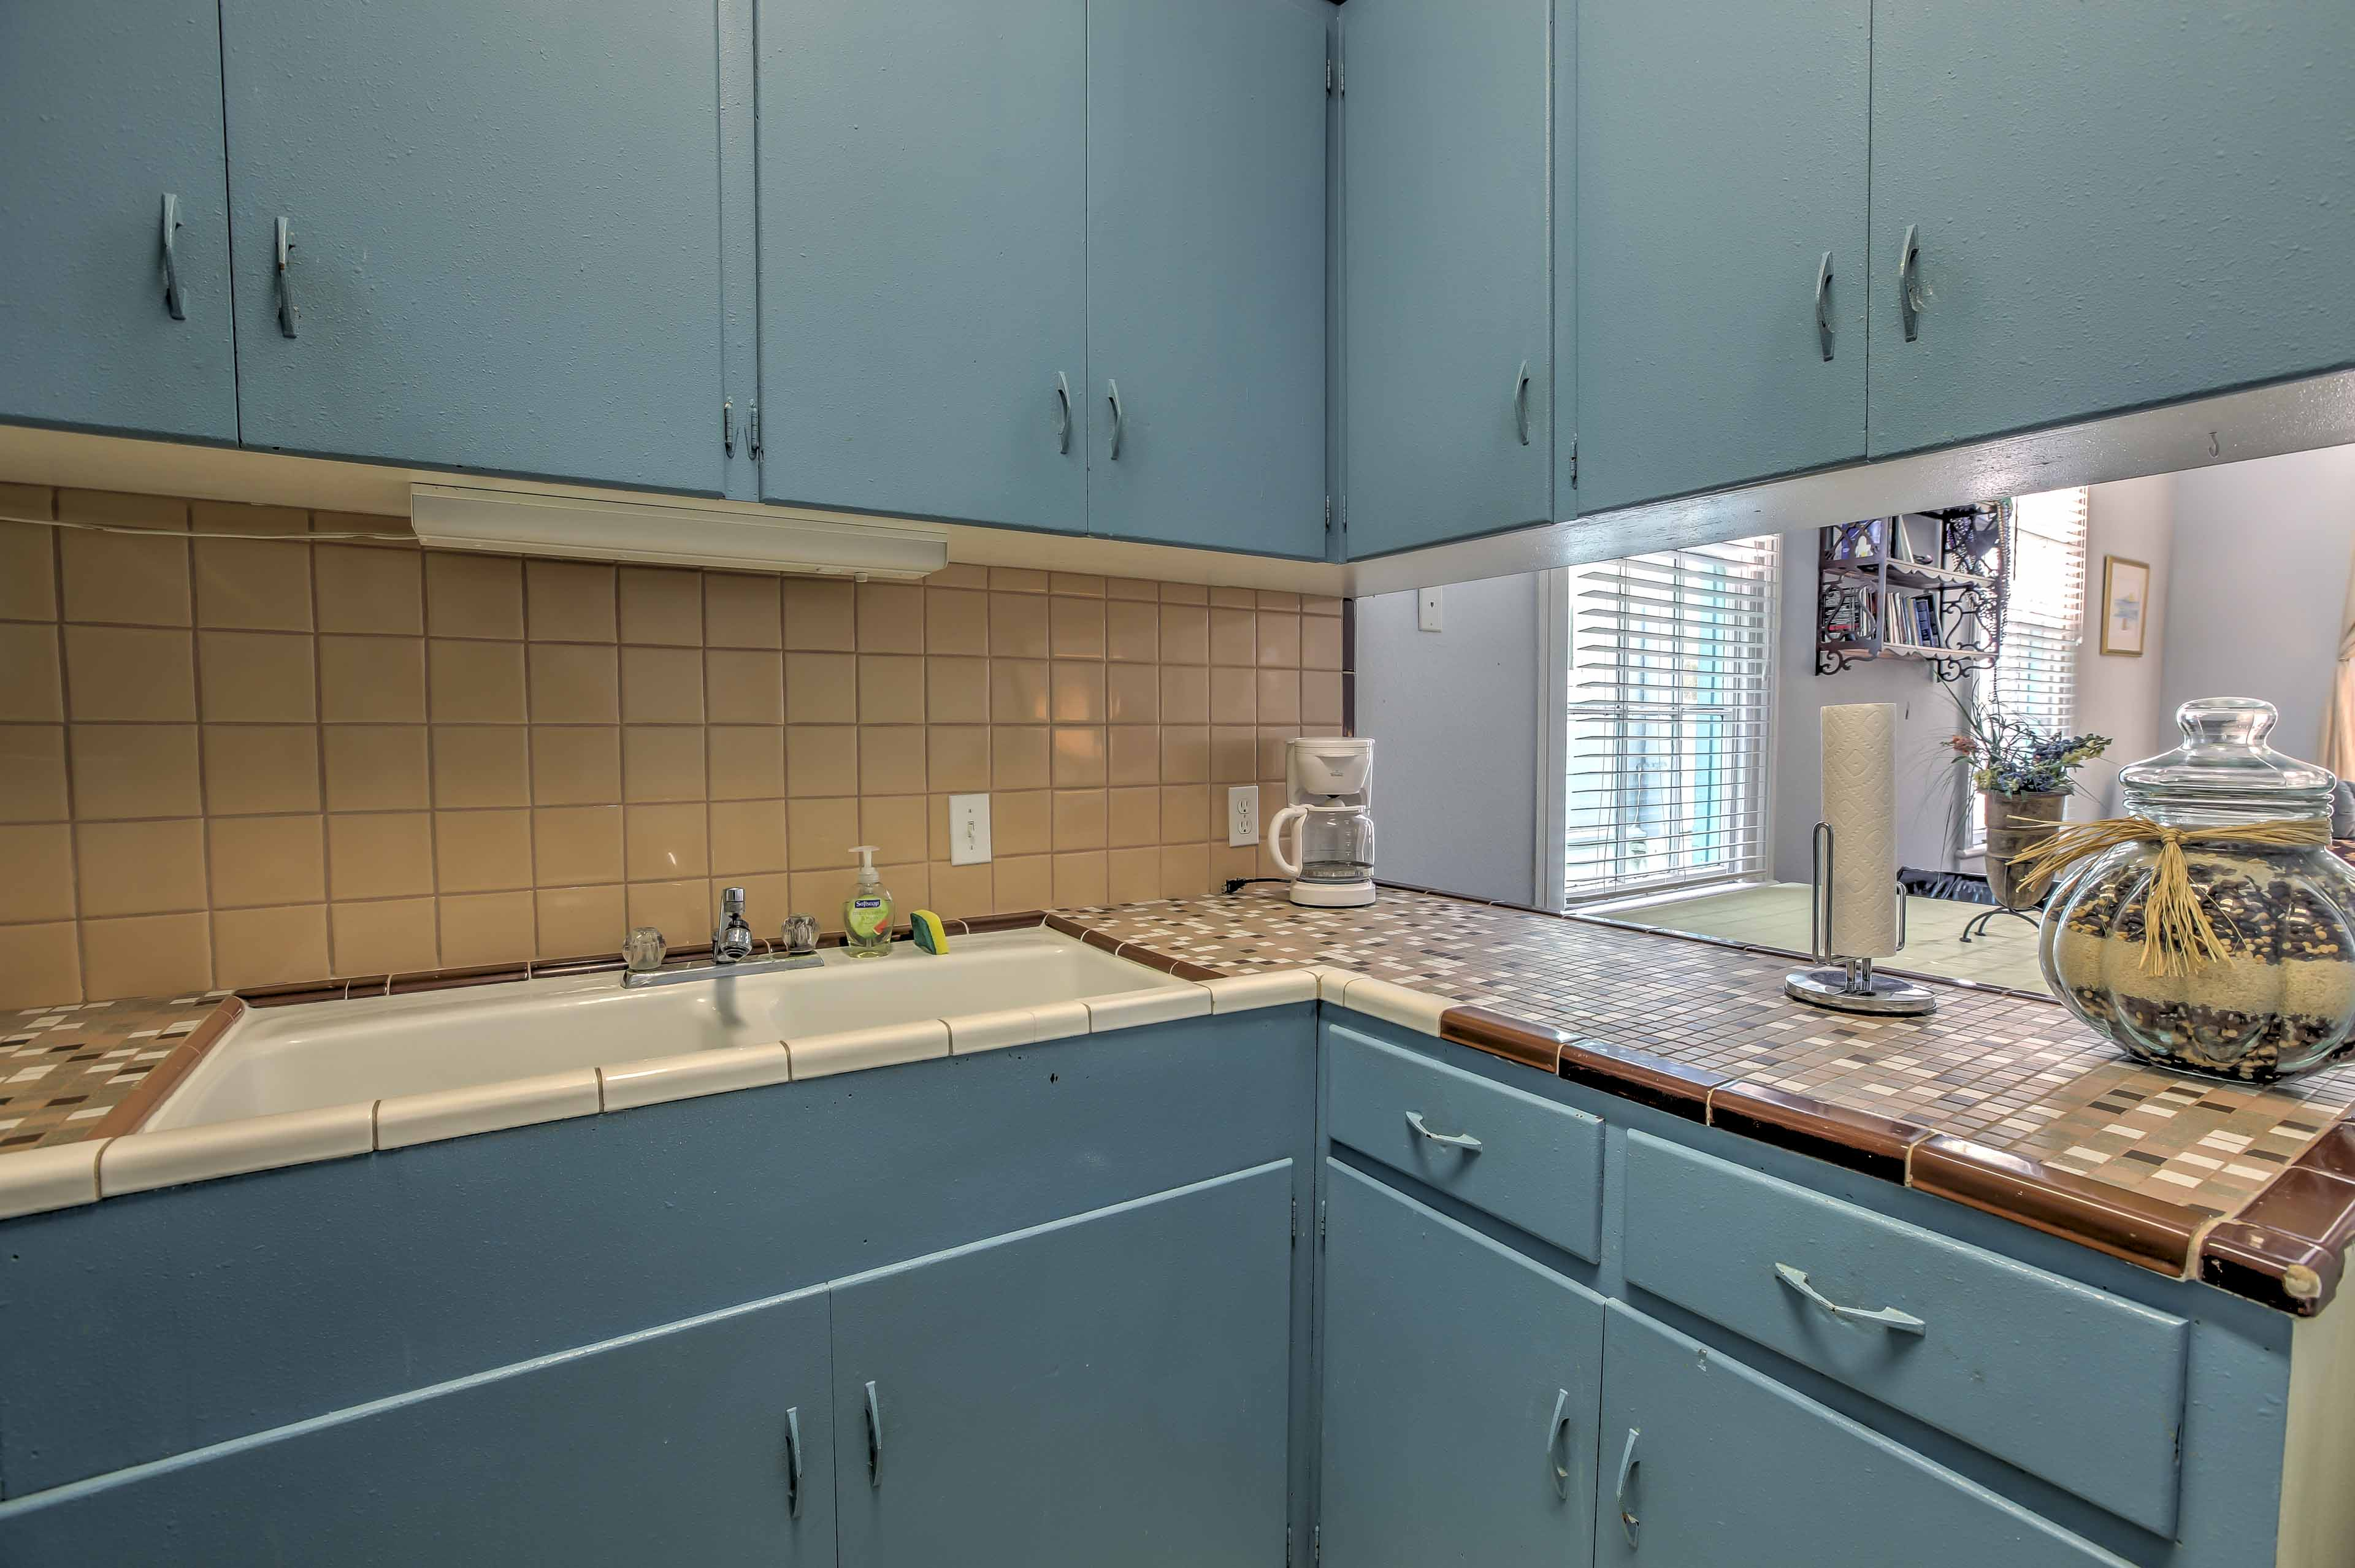 The kitchen comes equipped with all of your essential cooking appliances.